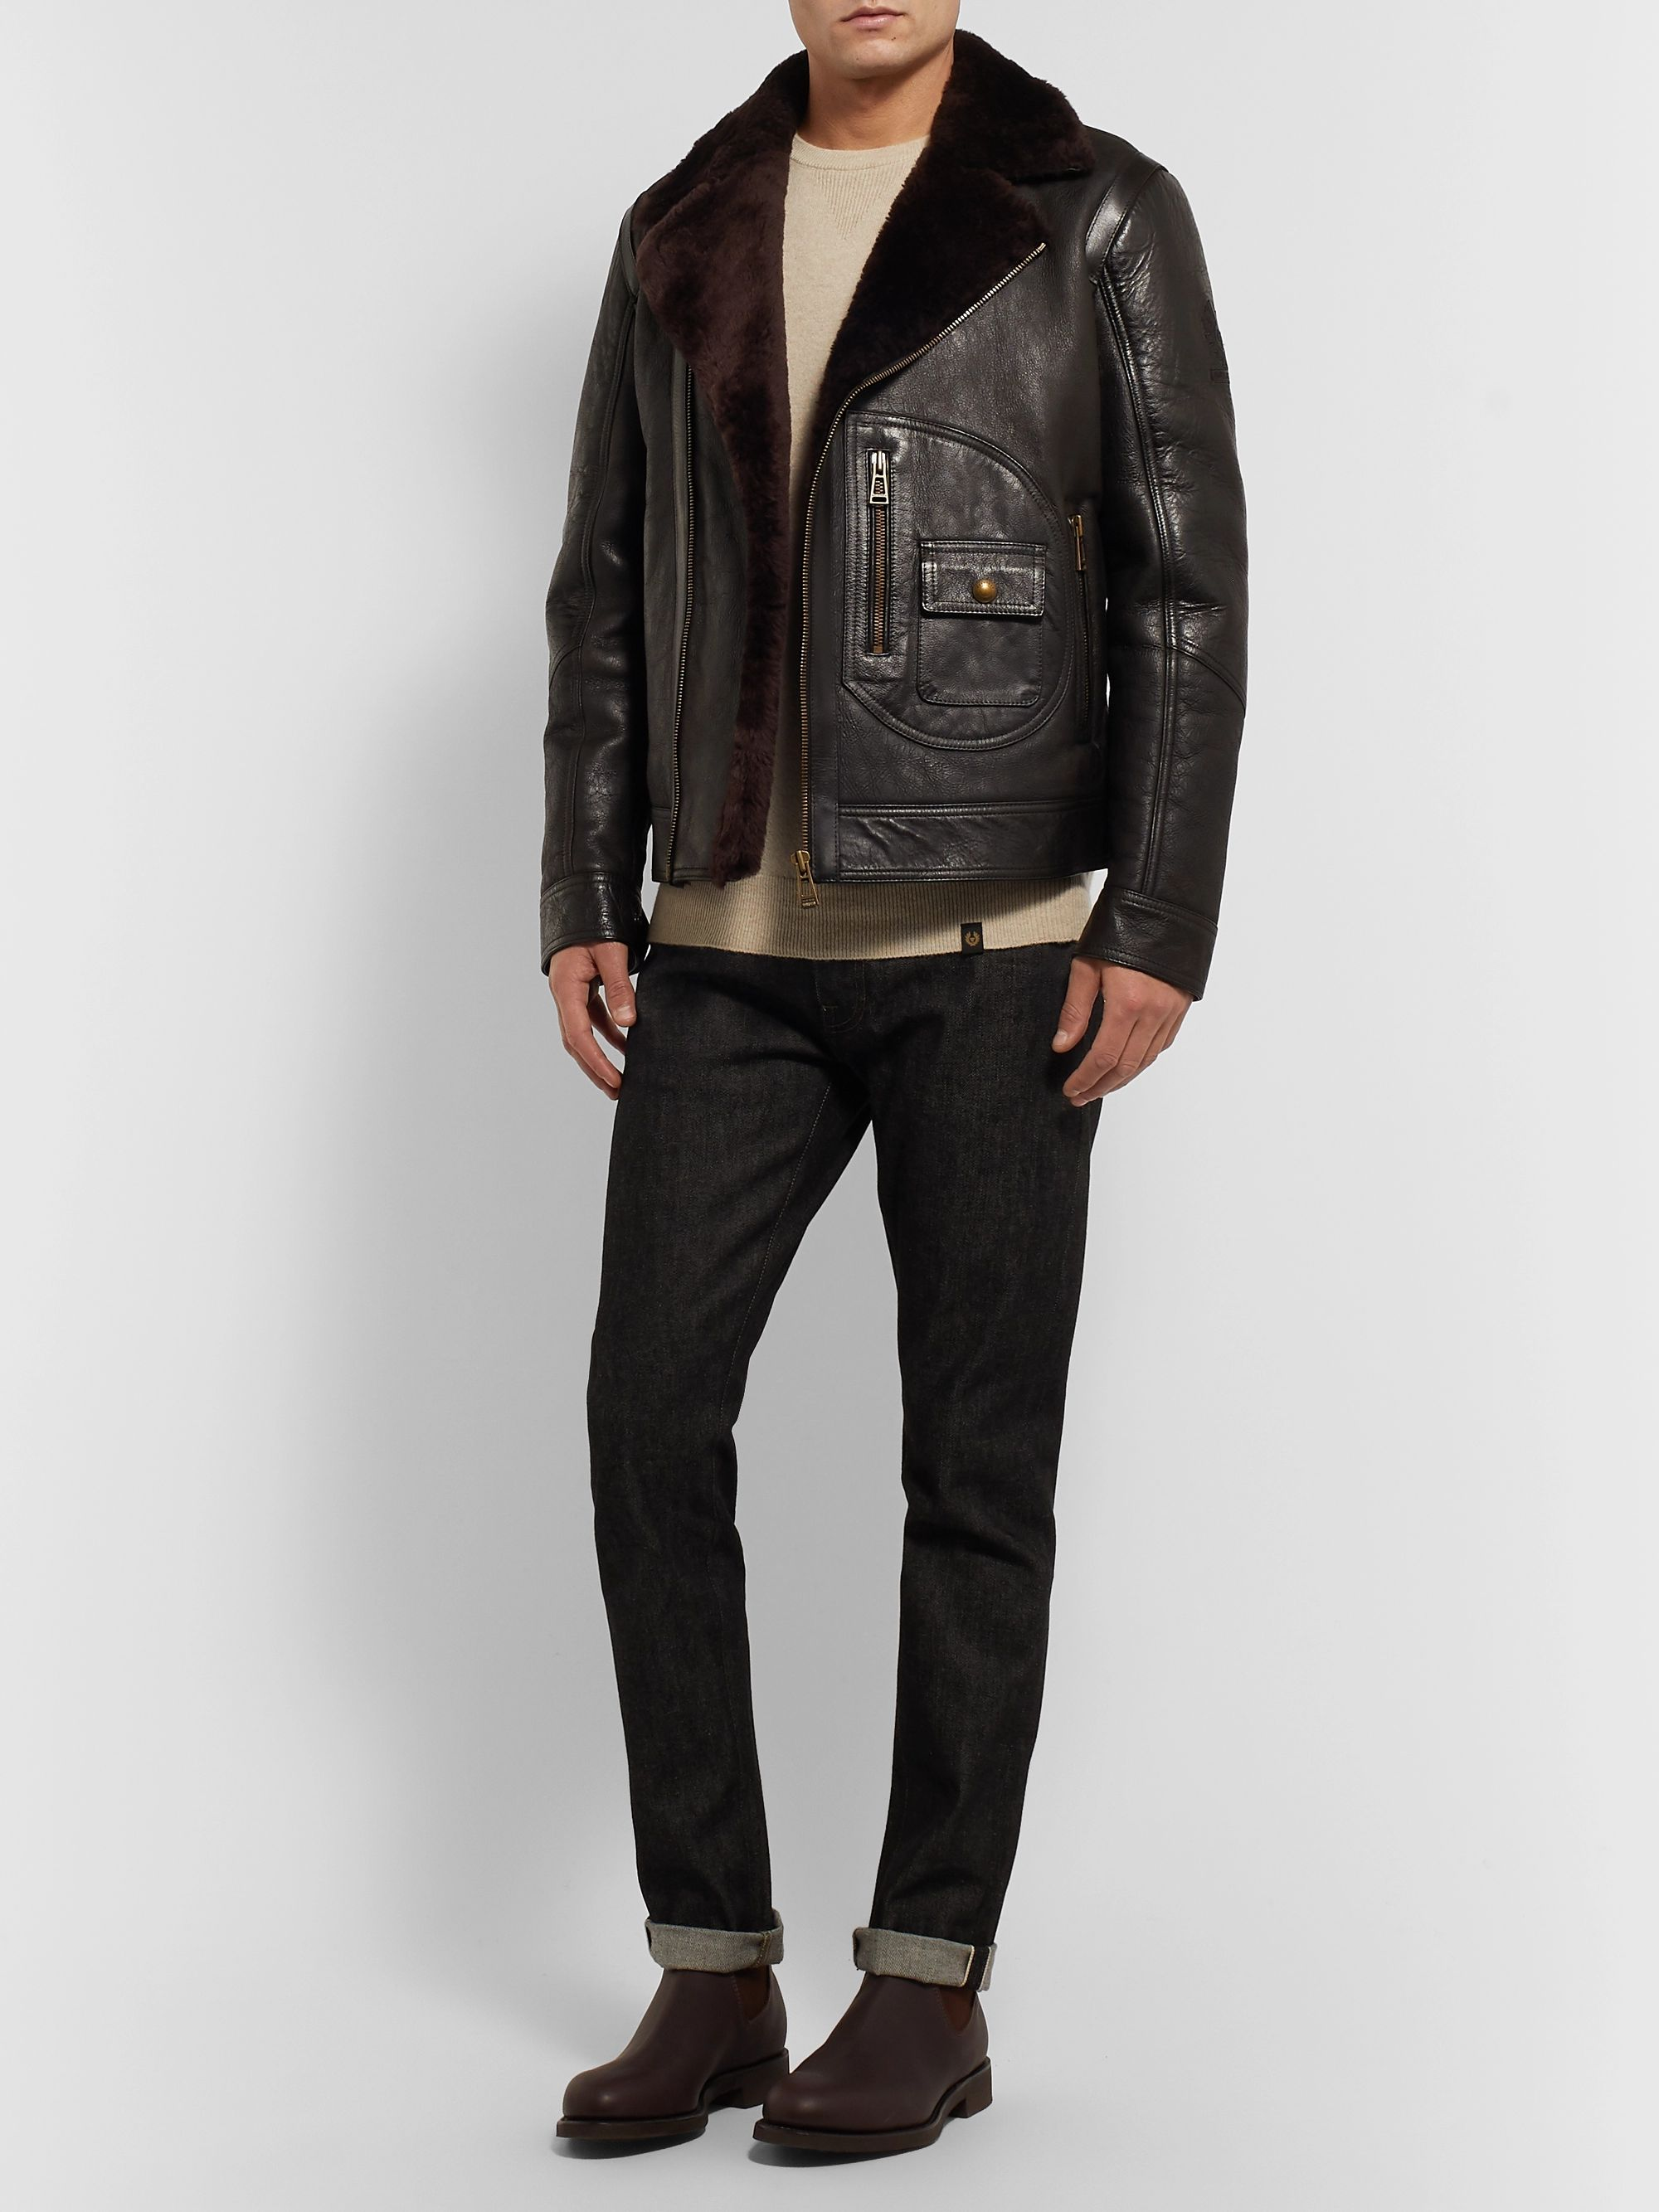 official site available elegant shoes Danescroft Slim-Fit Shearling-Lined Leather Jacket